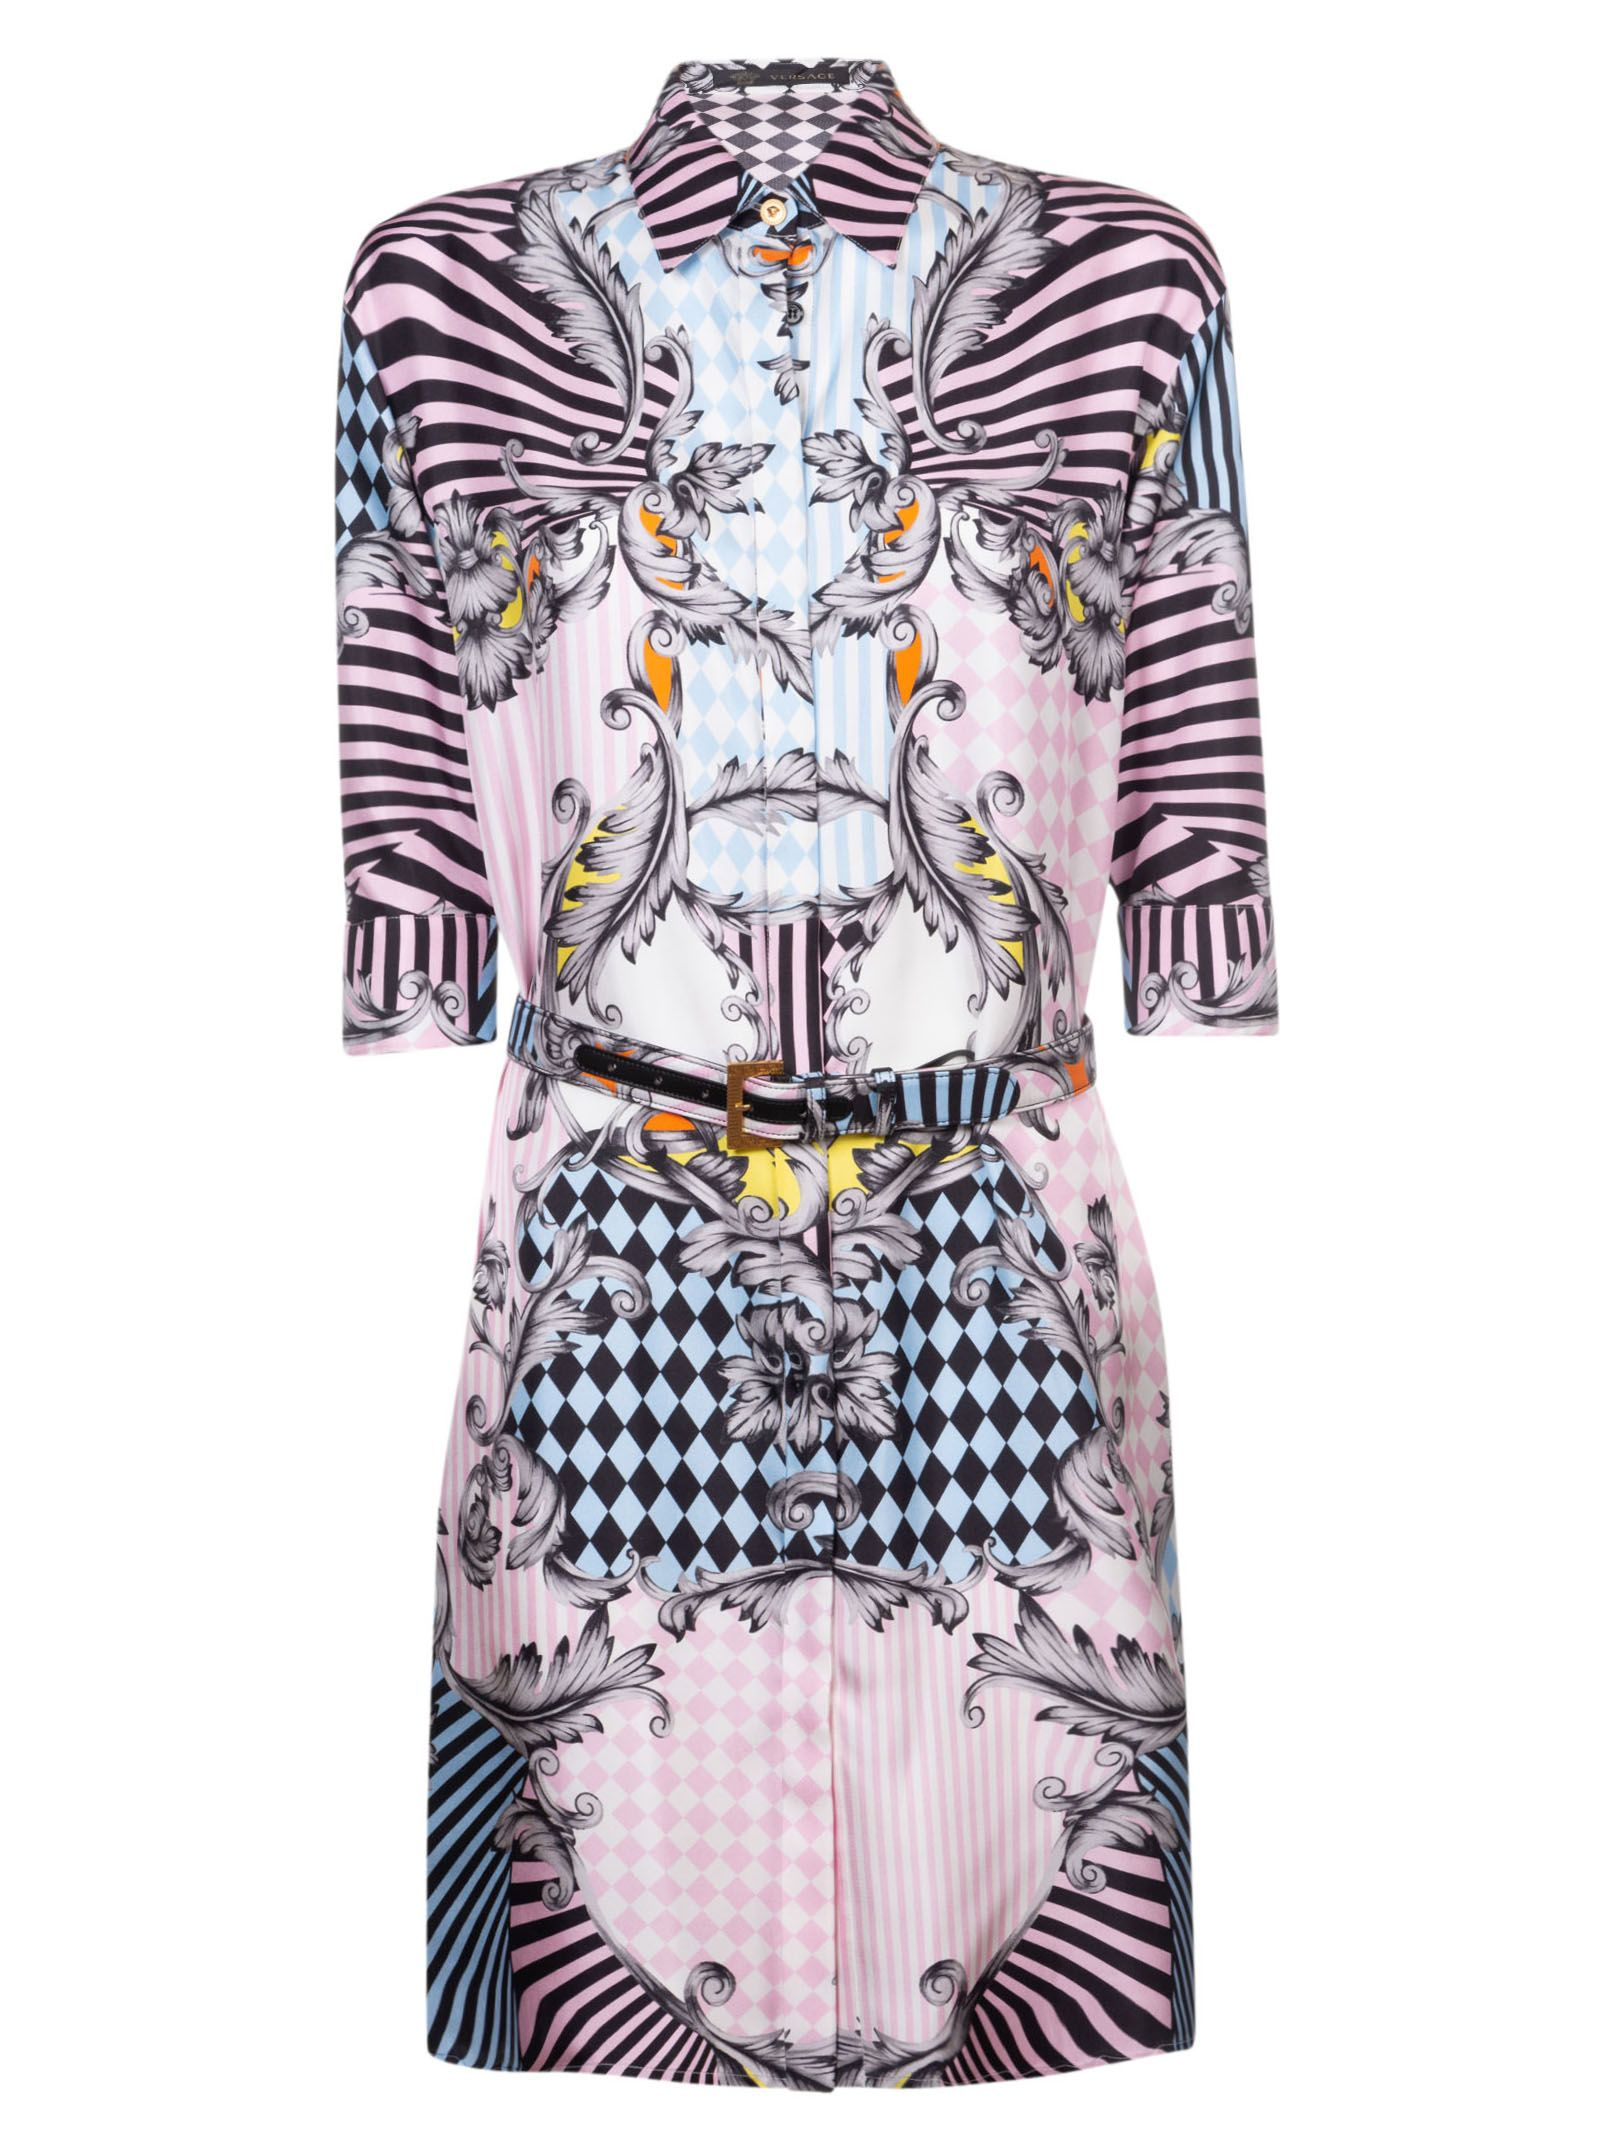 8863ac37865 Versace Versace Printed Shirt Dress - Multicolor - 10698808